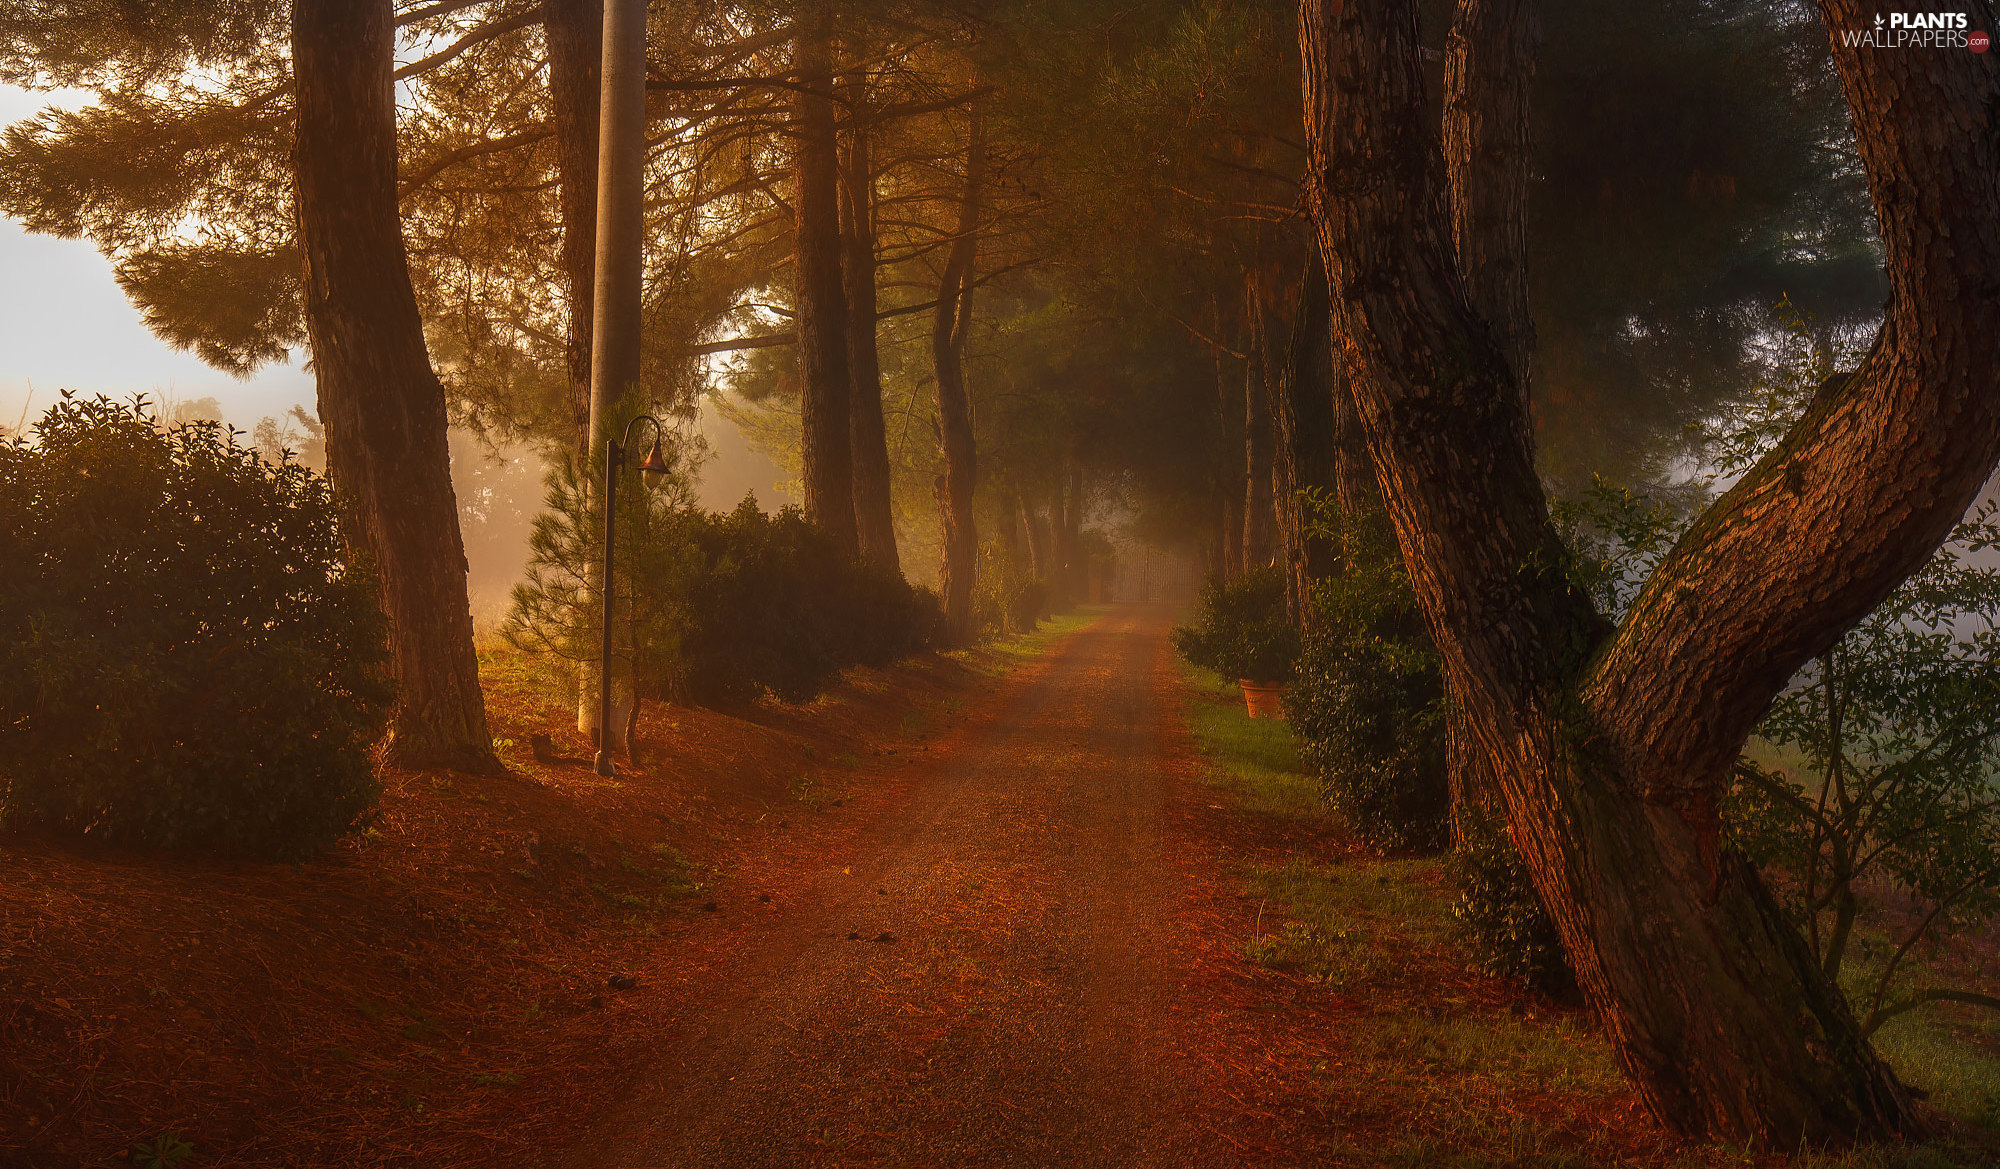 Lighthouse, autumn, viewes, Fog, trees, Way